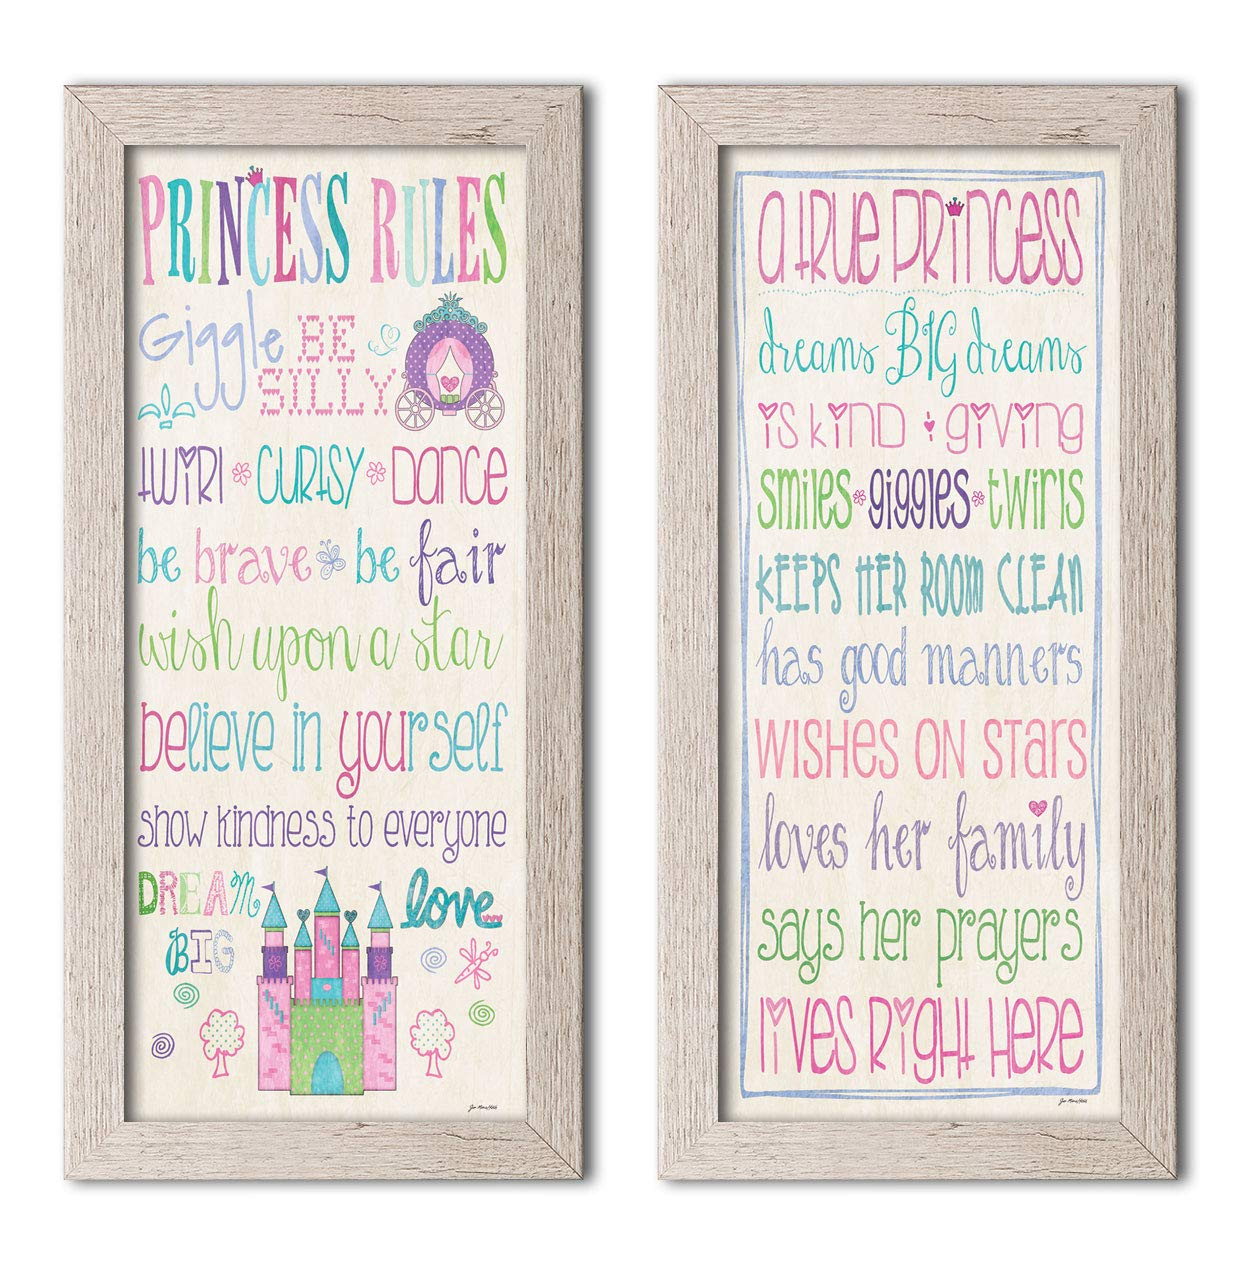 Gango Home Décor Adorable Princess Rules and A True Princess Set; Great for a Child's Room or Nursery; Two Distressed Framed 8x18in Prints; Ready to Hang!